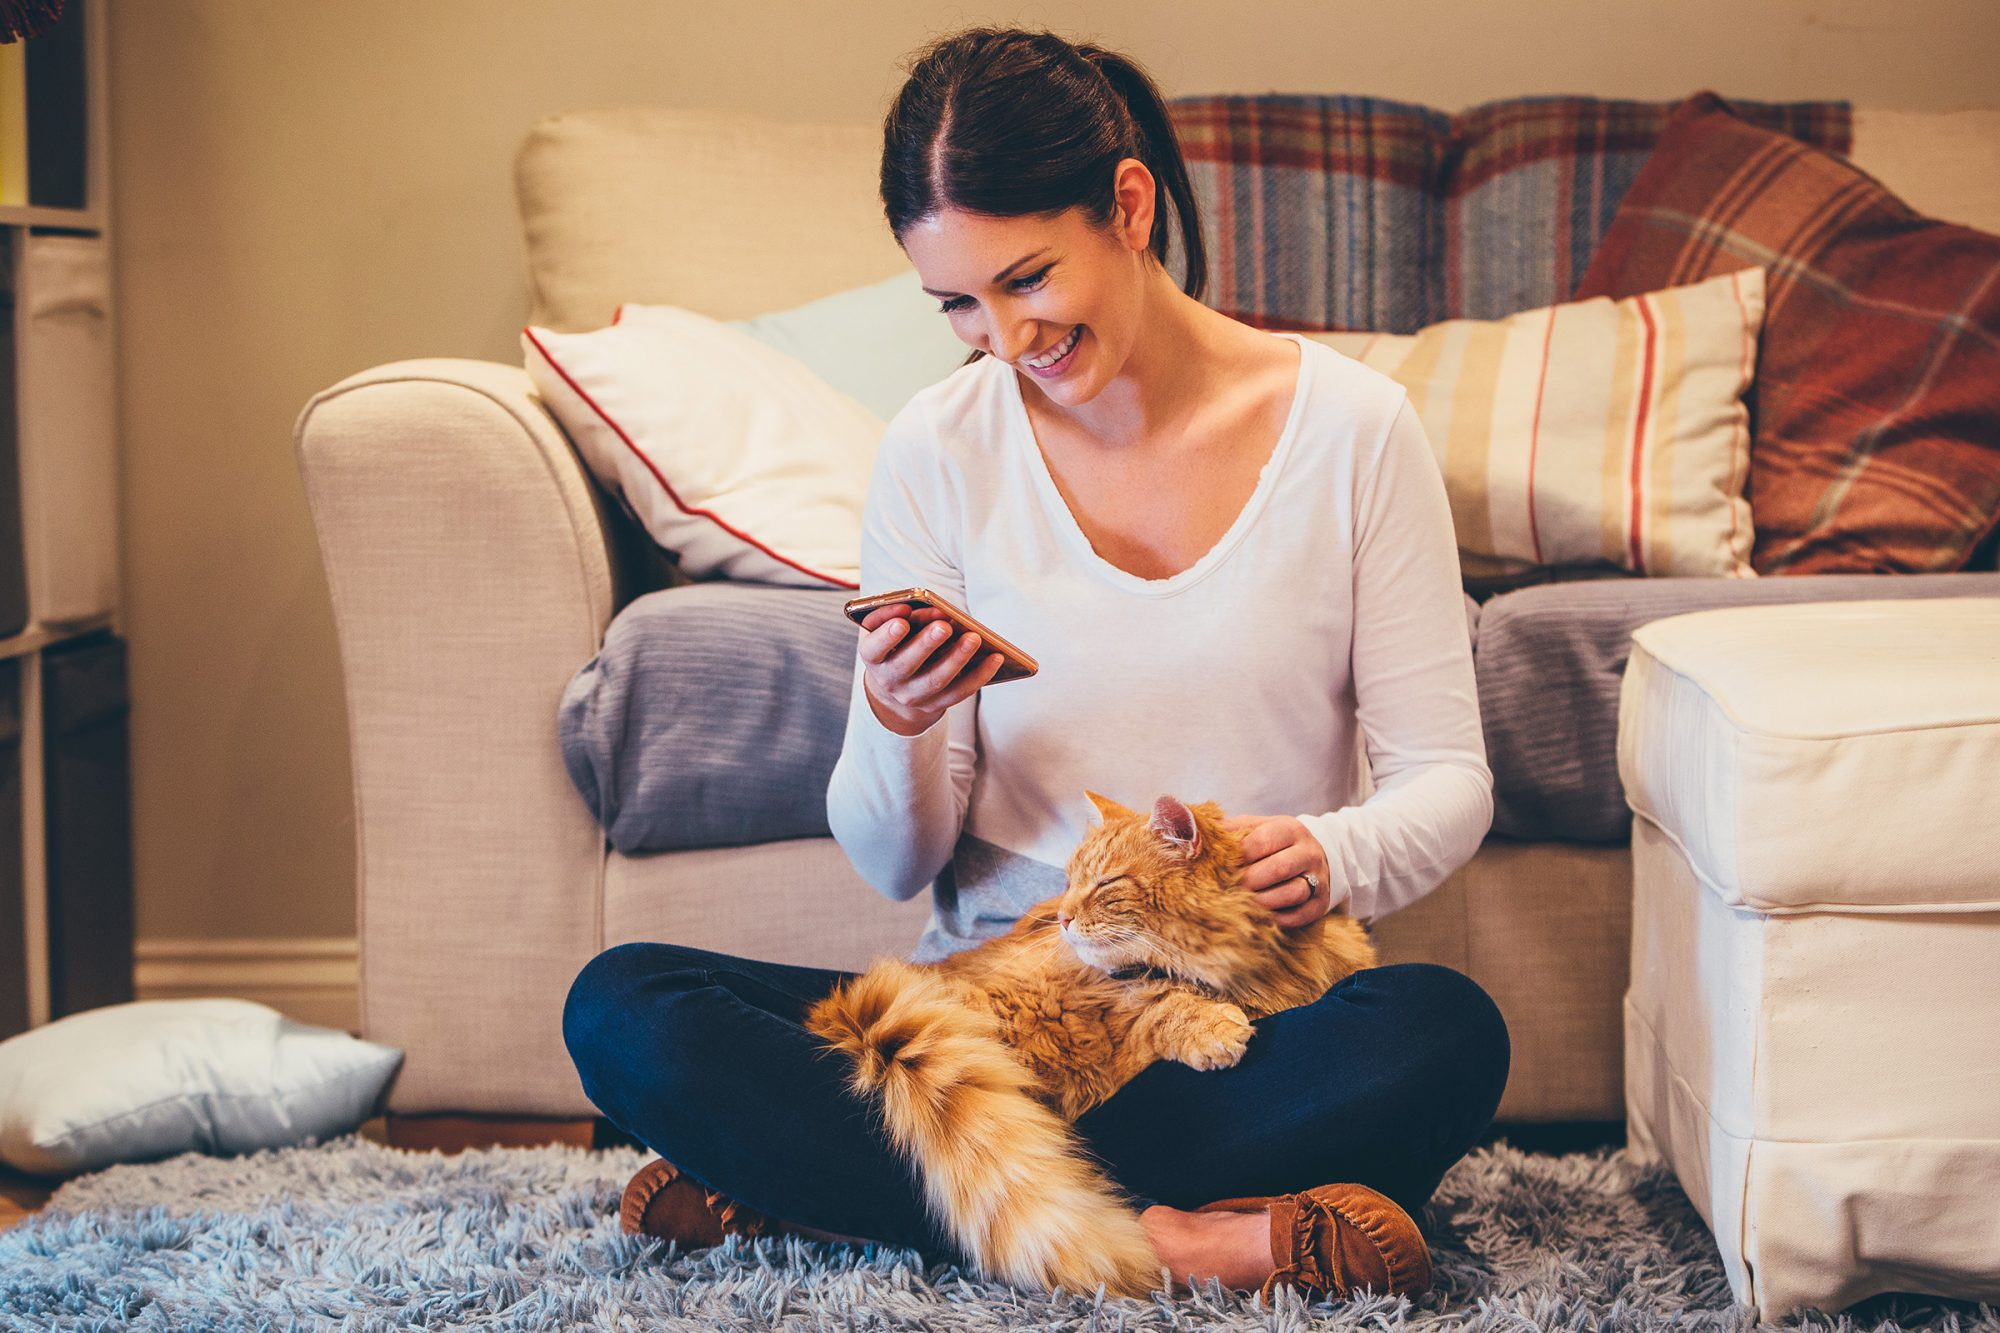 Woman sitting with cat on phone